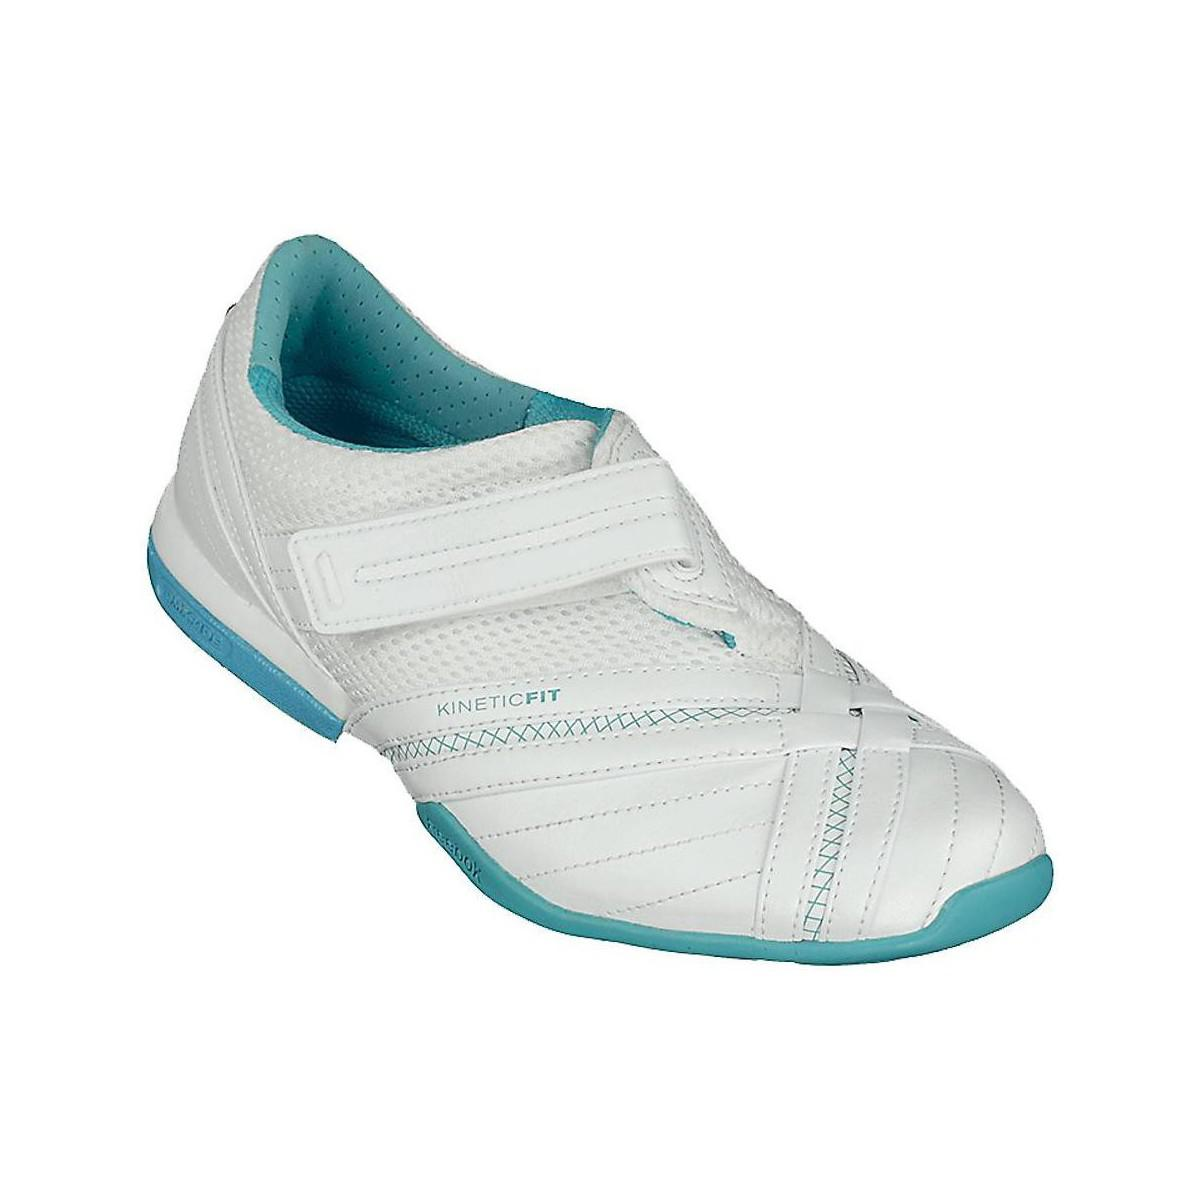 Cheap Sale 100% Guaranteed Reebok Kfs GO Move women's Shoes (Trainers) in Clearance Fake Prices Cheap Price IjfiFmj